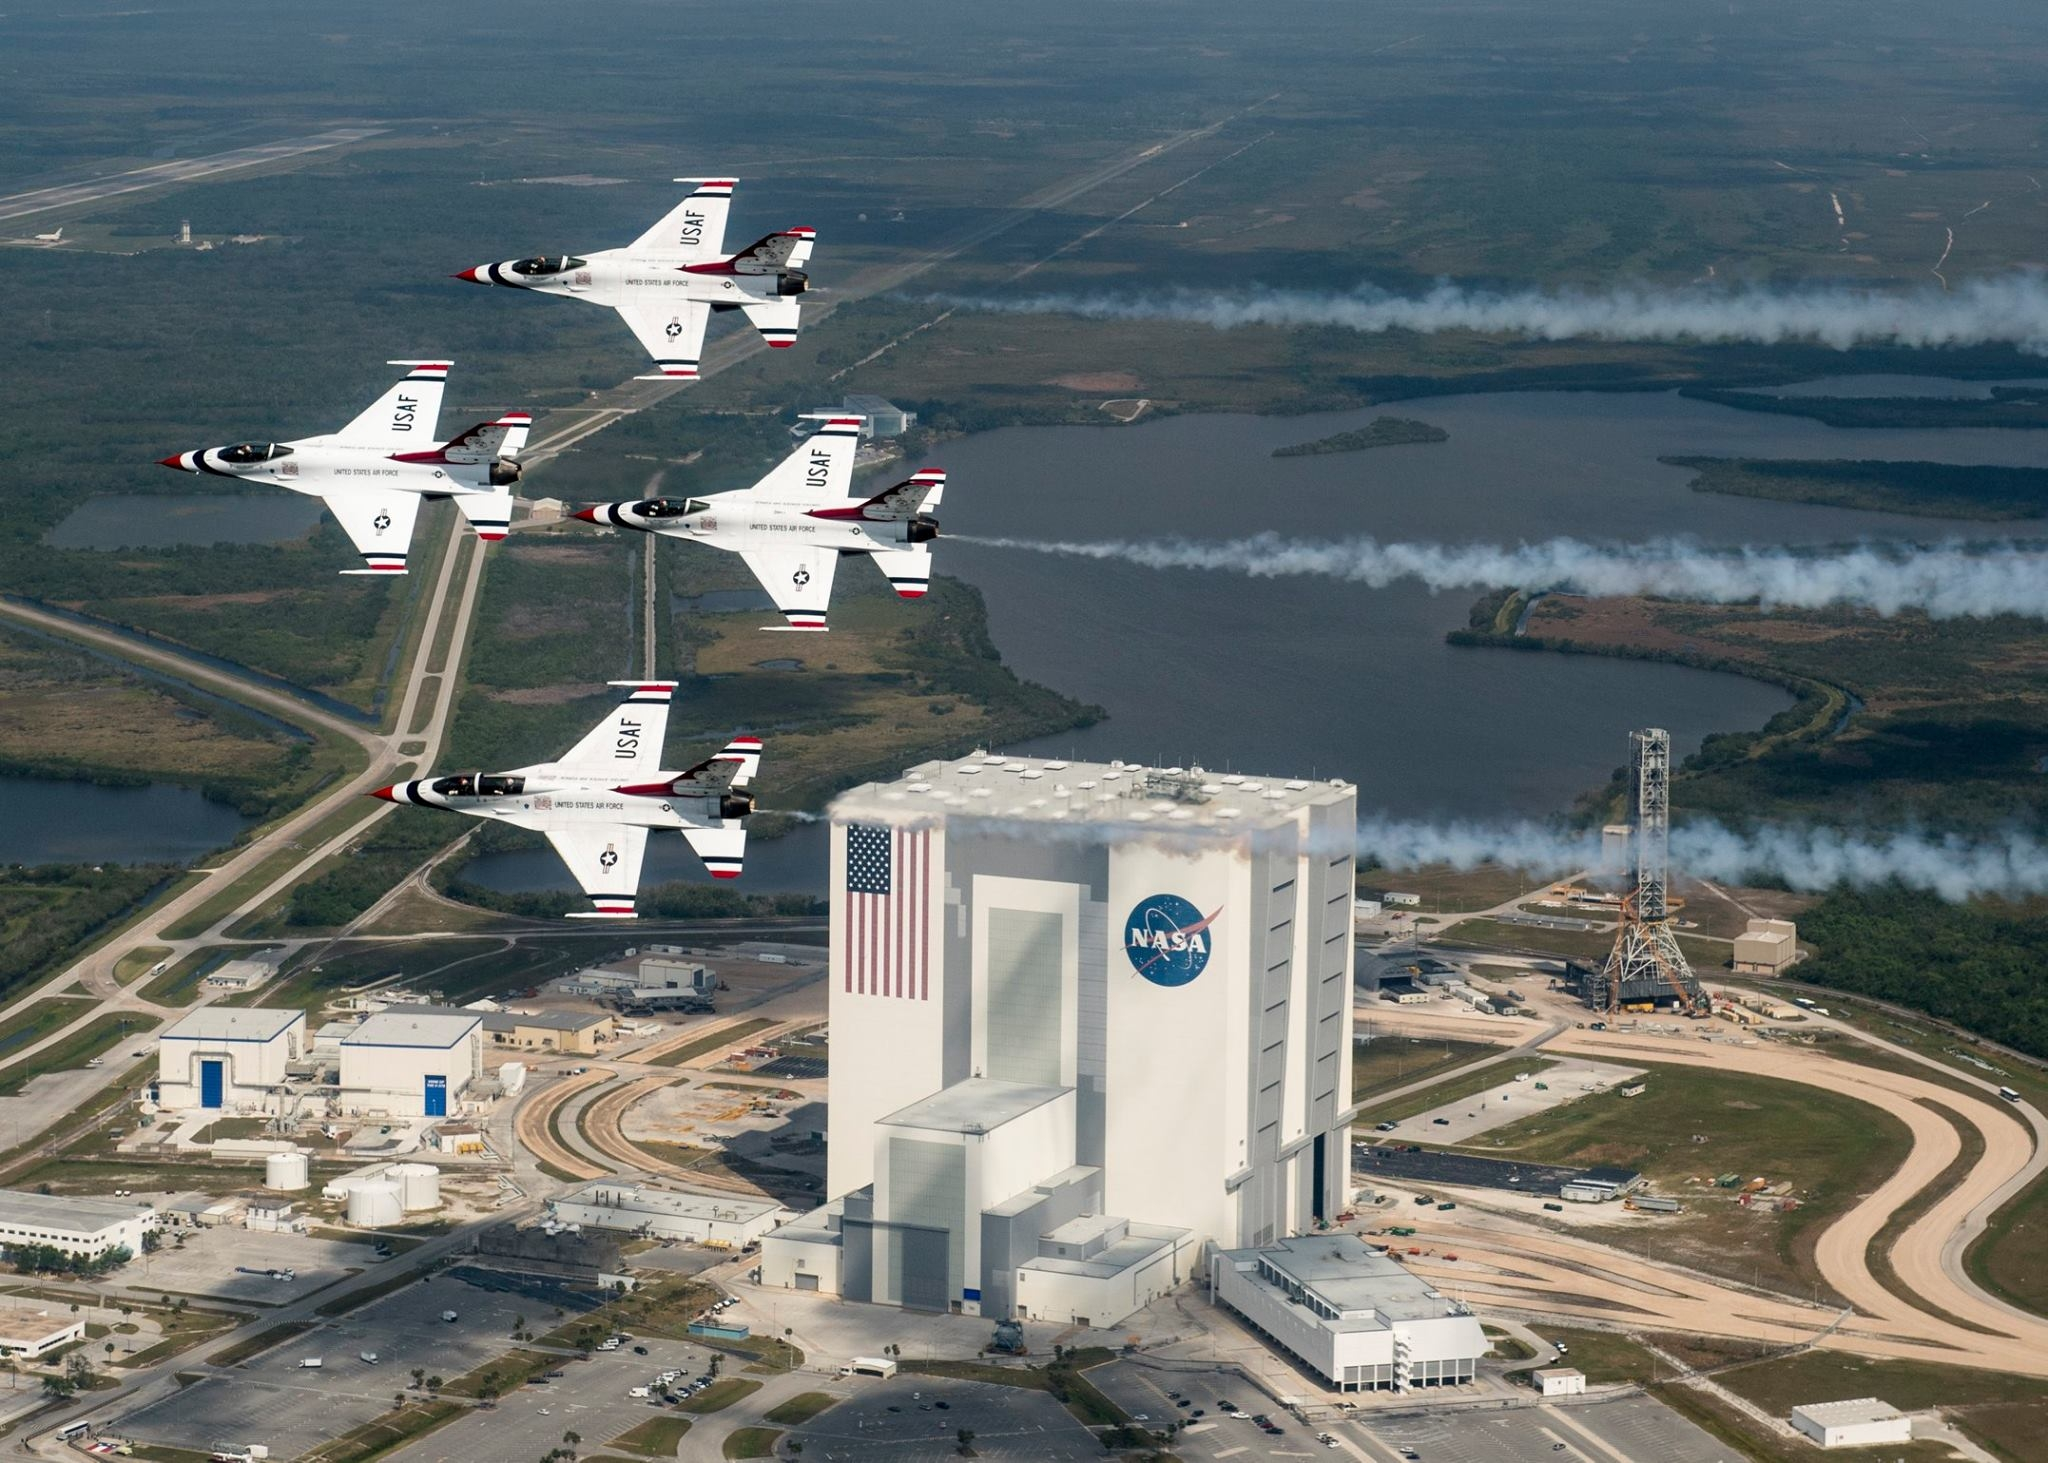 Buzz Aldrin with Thunderbirds over Launch Complex 39A at the Kennedy Space Center. Photo USAF